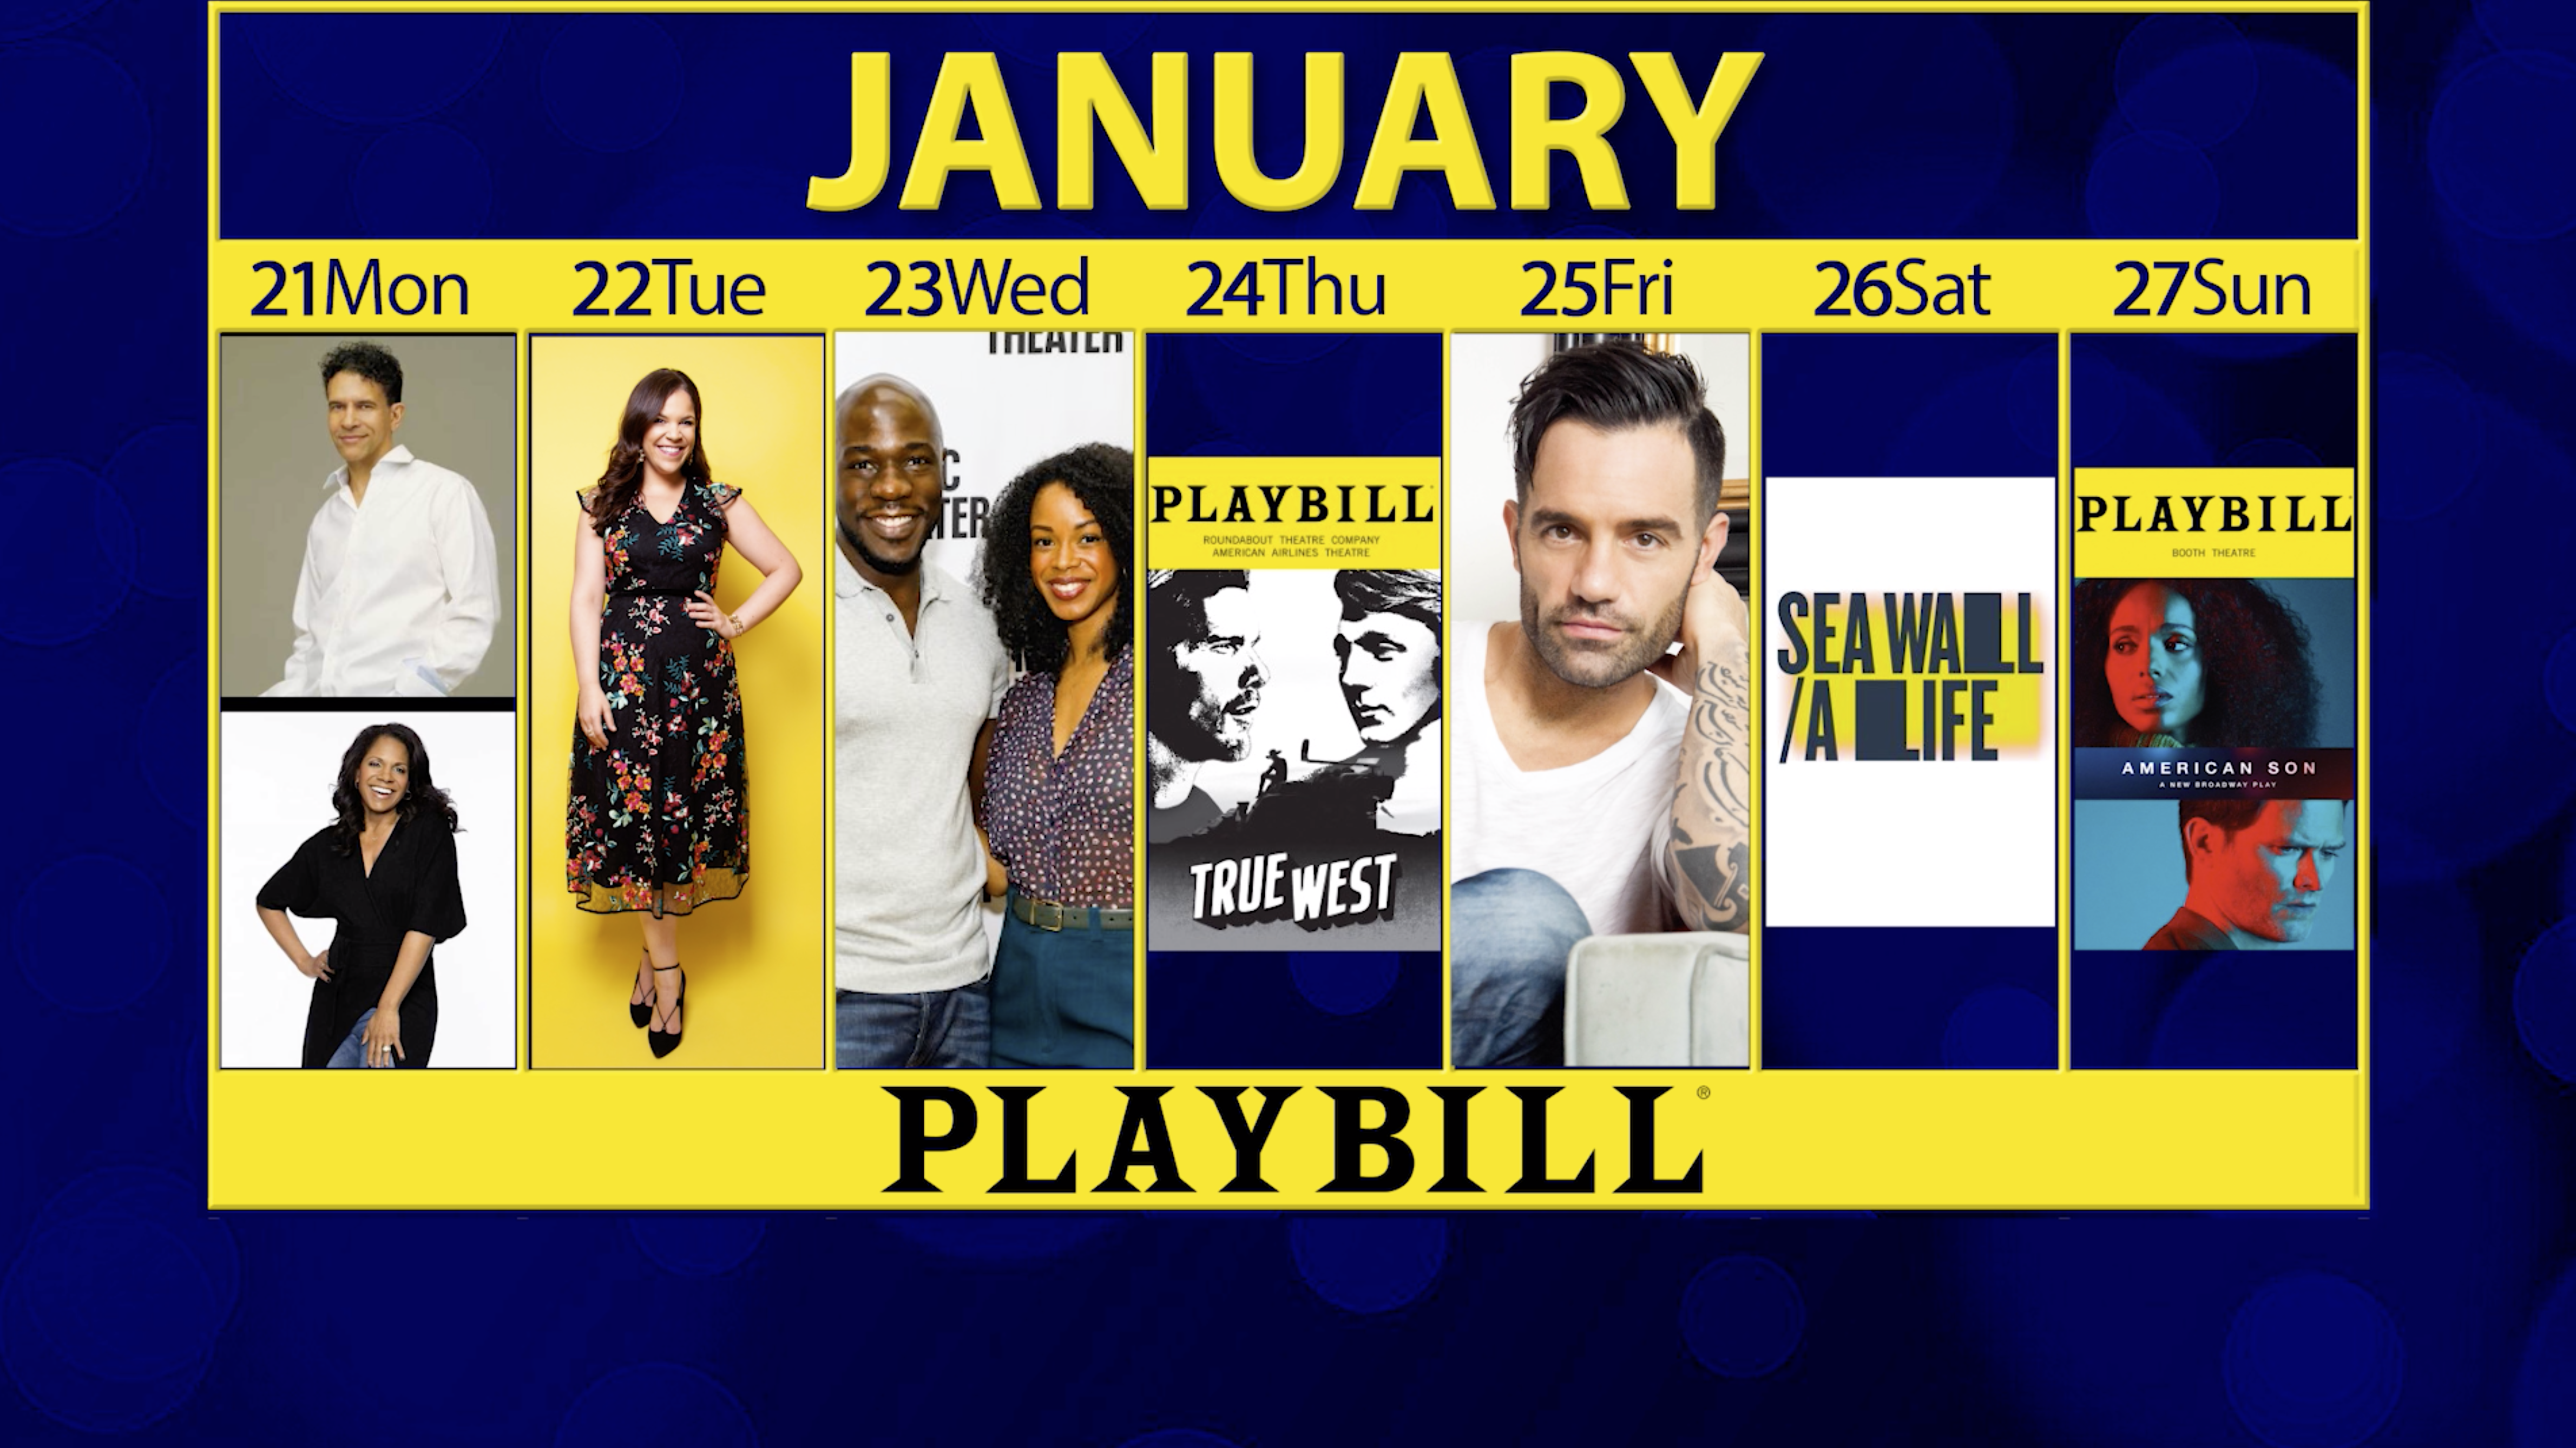 Playbill Calendar: Your Guide to Broadway, Off-Broadway and More January 21-27, 2019